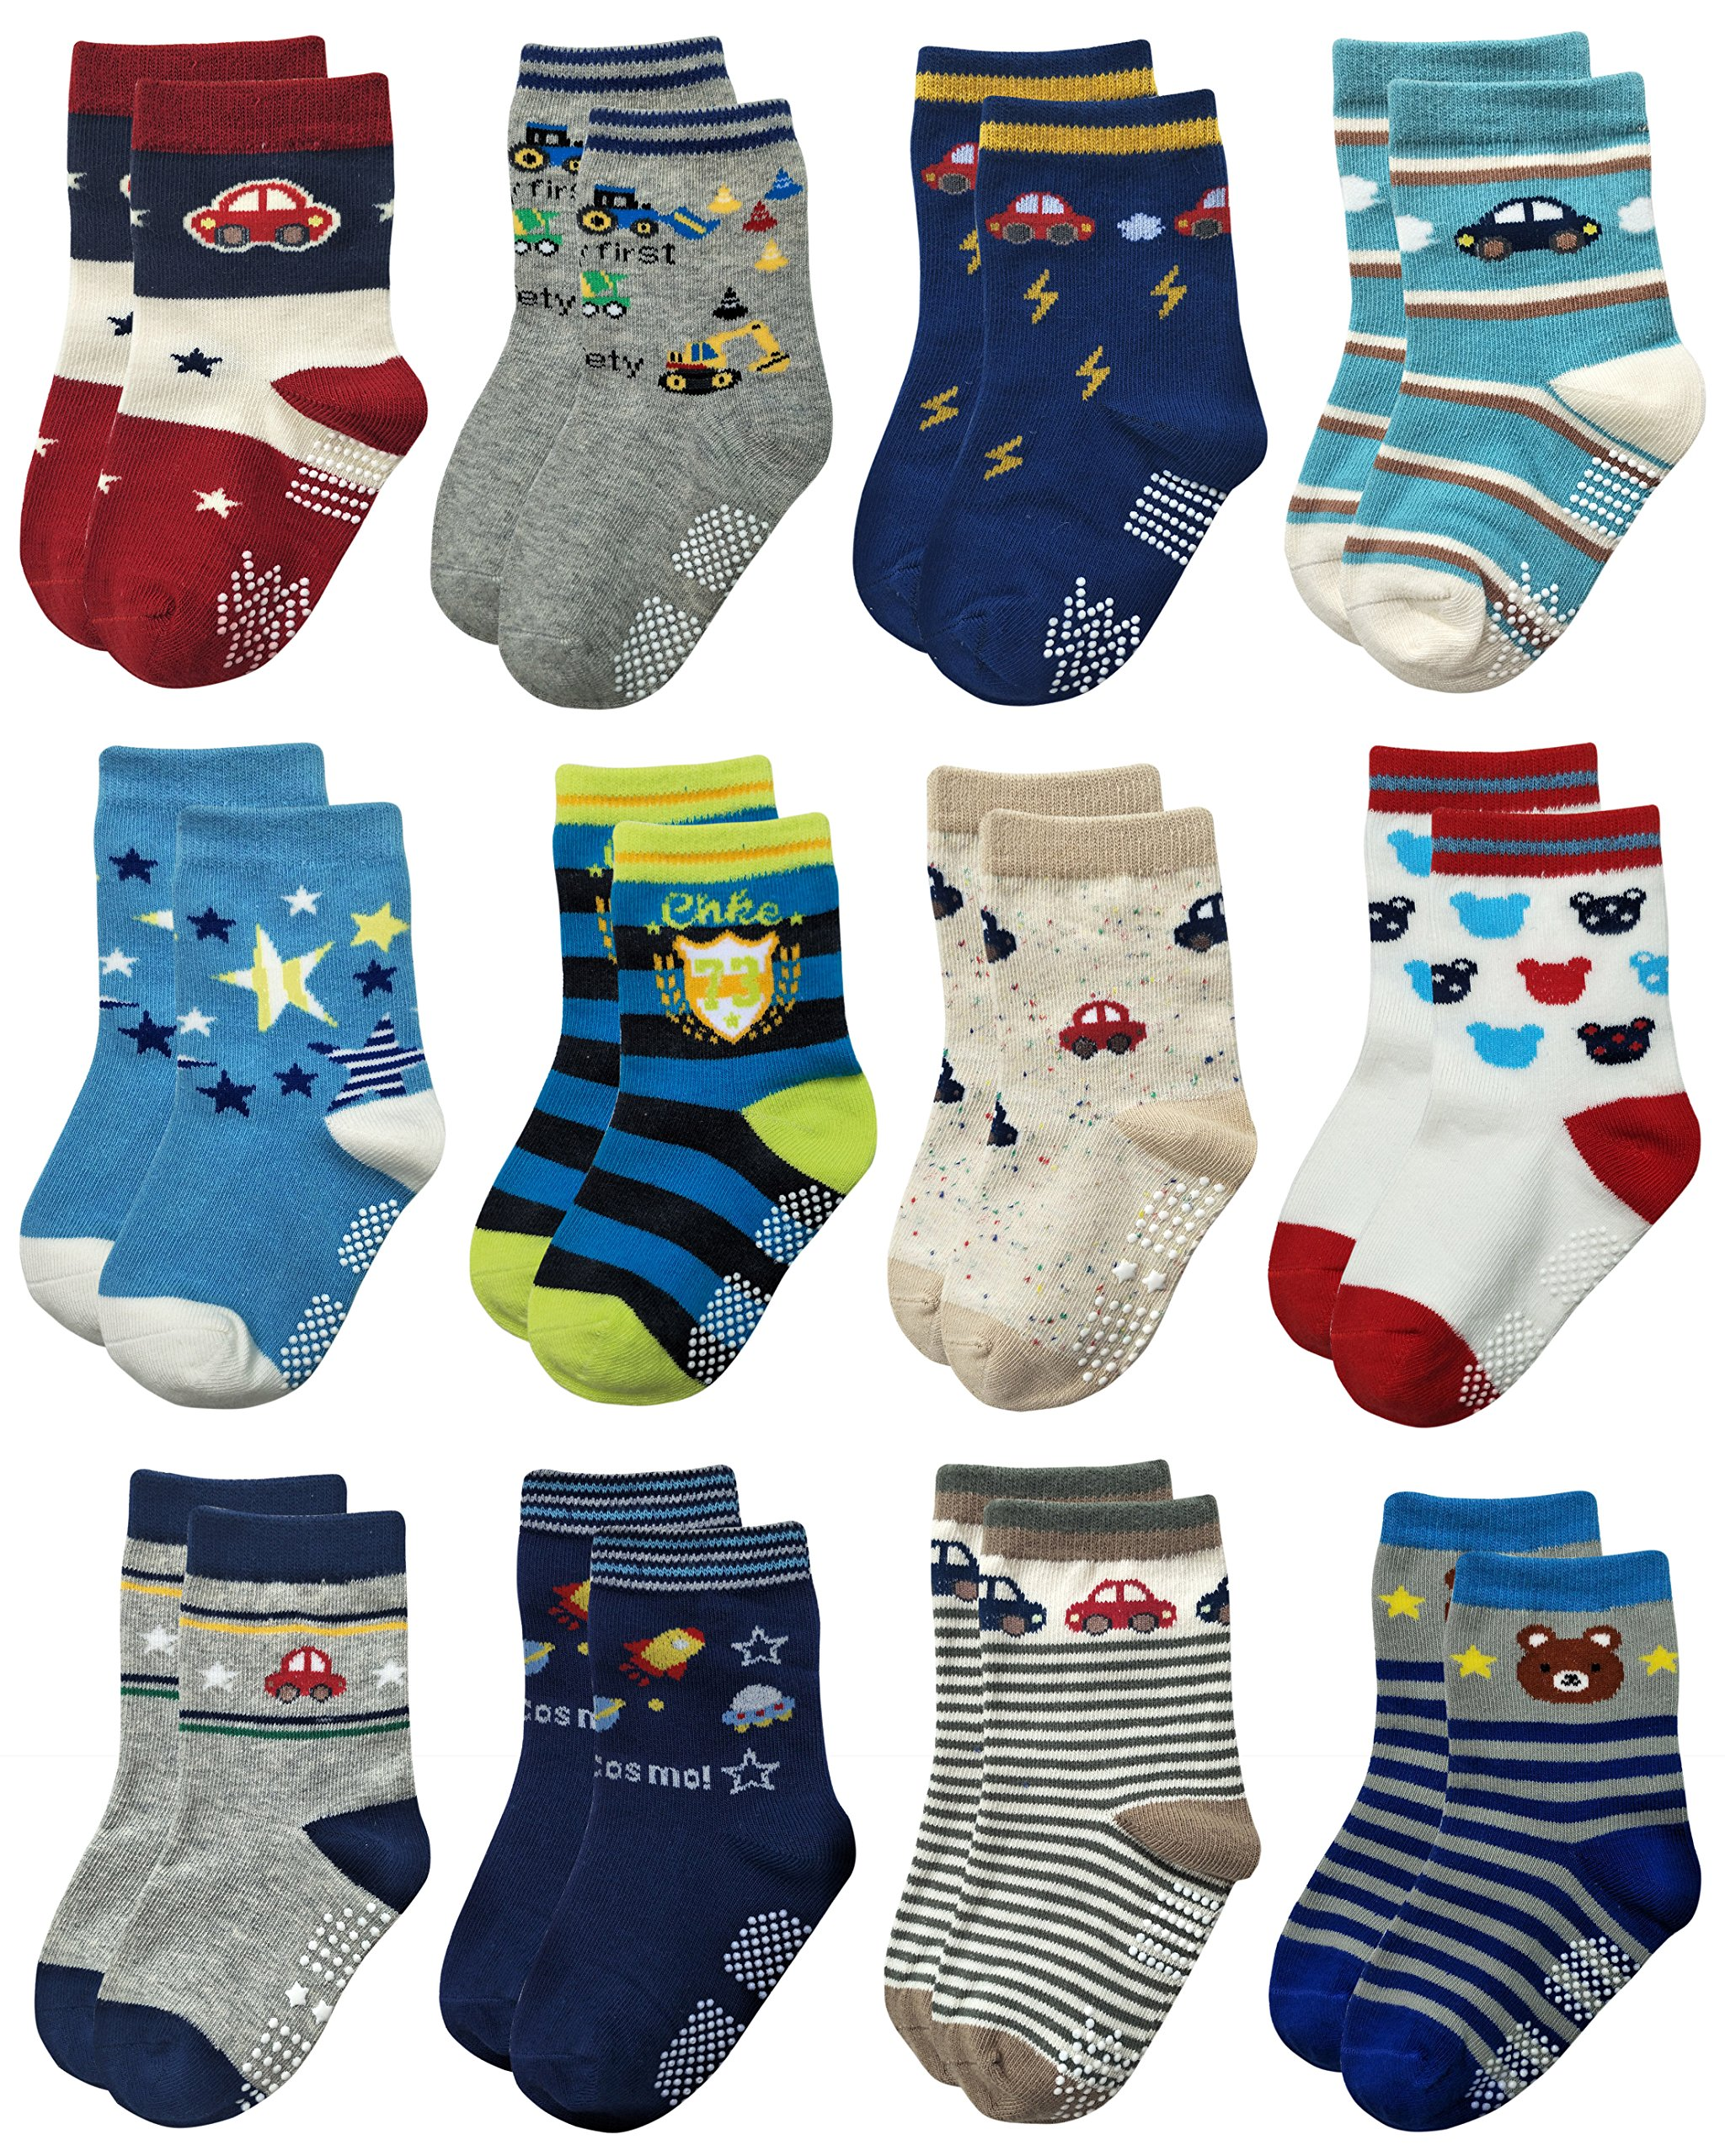 Deluxe RB-71518 Non Skid Anti Slip Slipper Cotton Crew Socks With Grips For Baby Toddlers Kids Boys (9-18 Months, 12 designs/RB-71218)